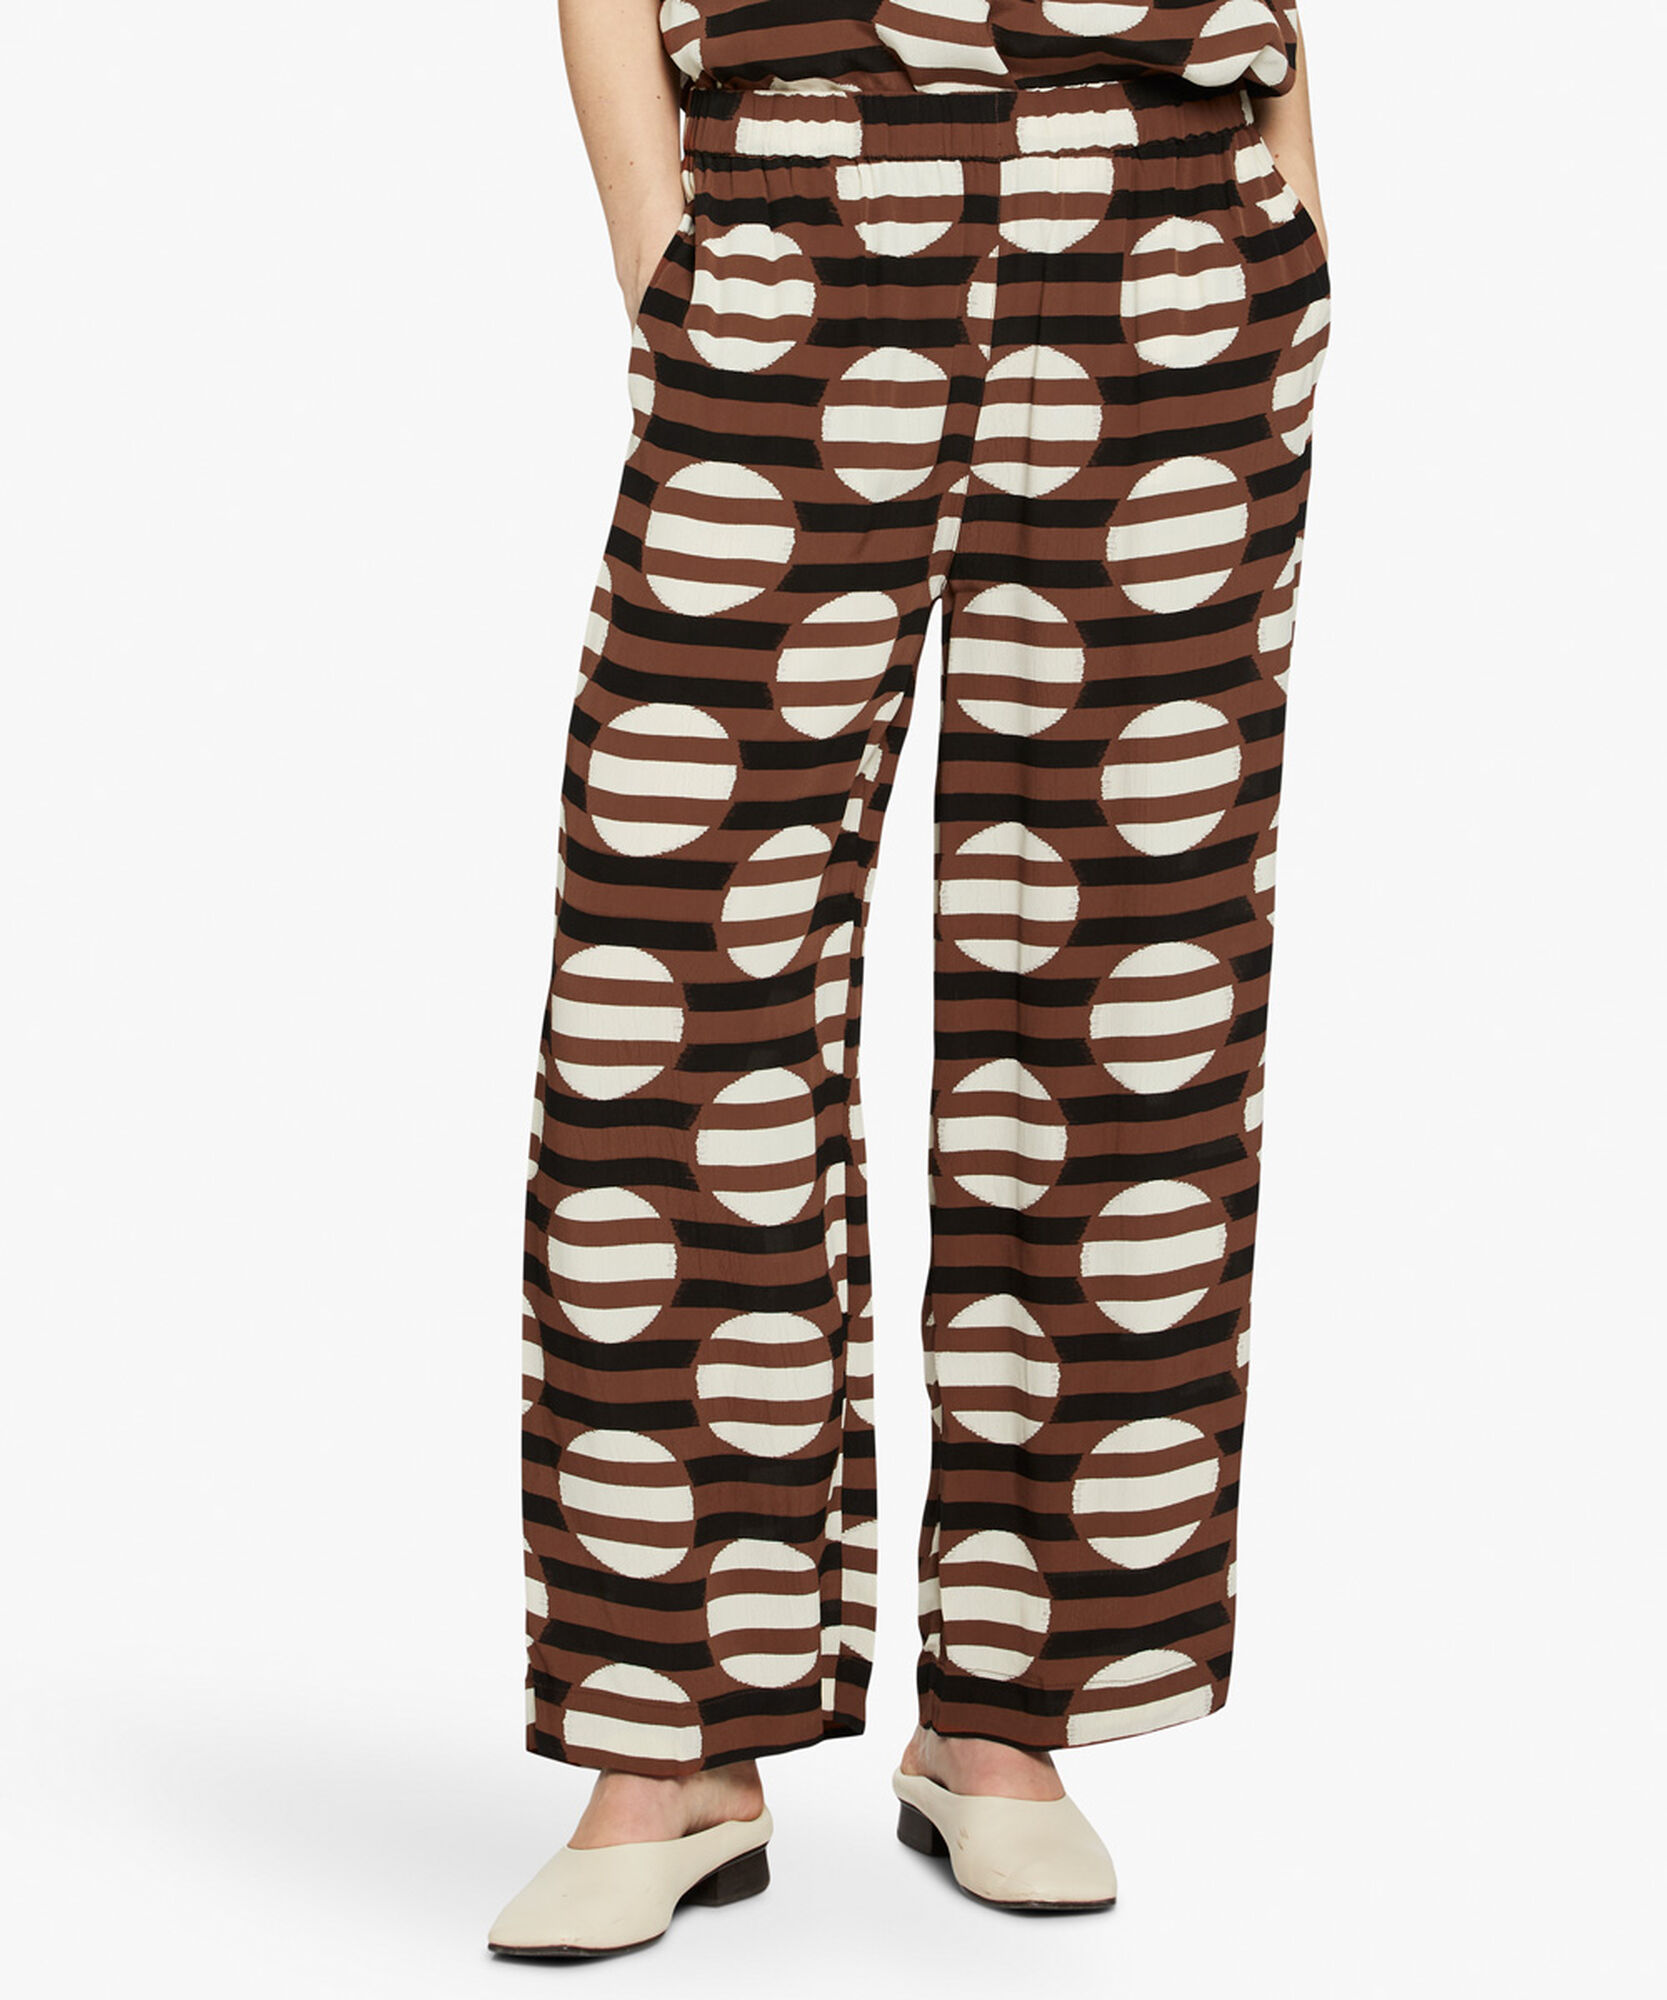 PARILI TROUSERS, Tiramisu, hi-res